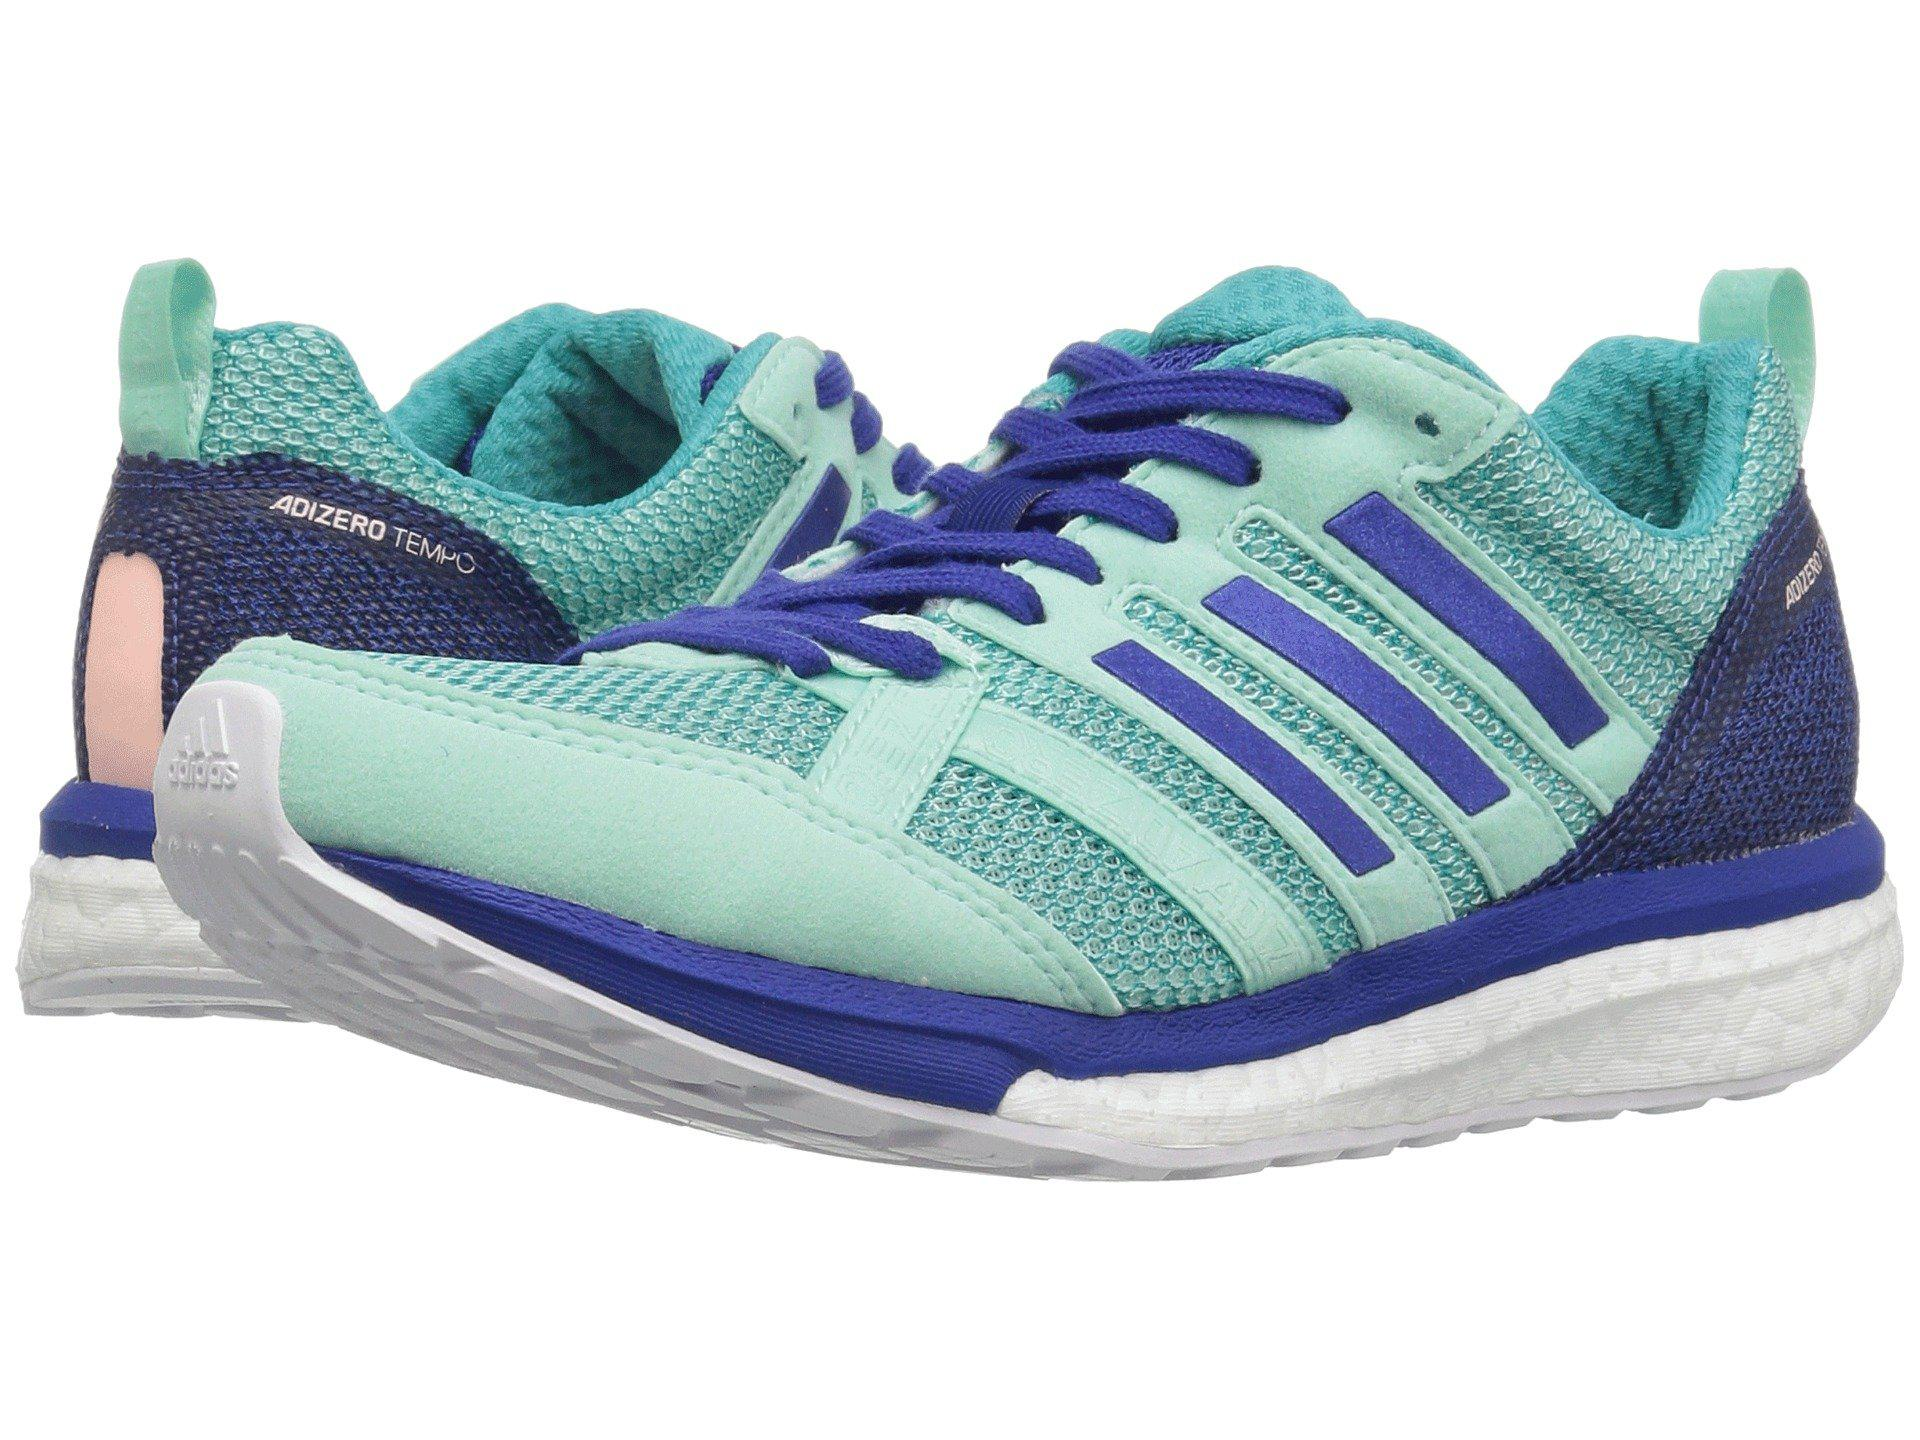 the best attitude 67c04 50519 adidas Originals. Blue Adizero Tempo 9 ...